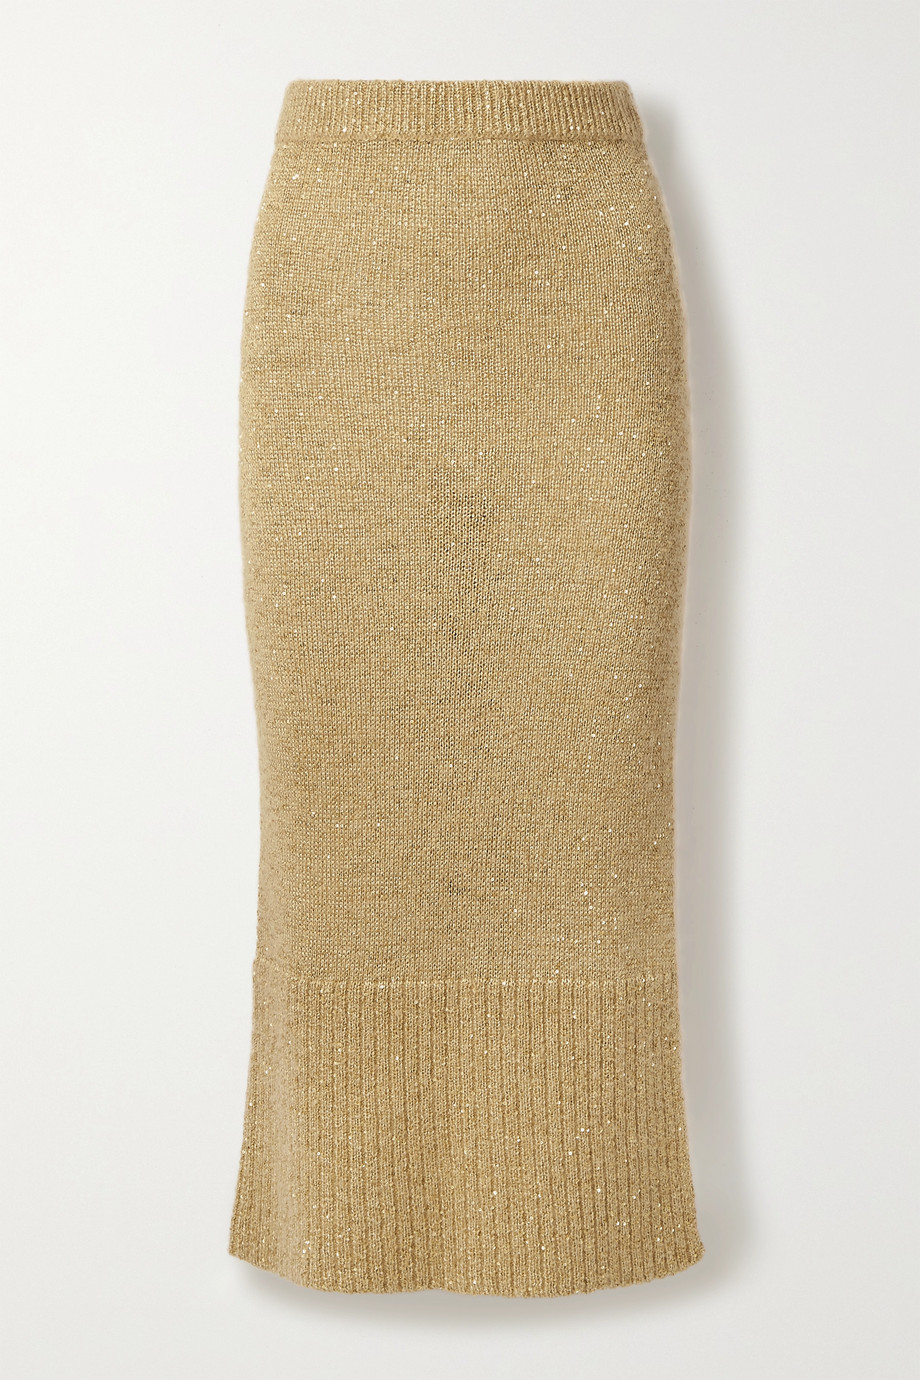 Altuzarra Kinsley sequin-embellished knitted midi skirt